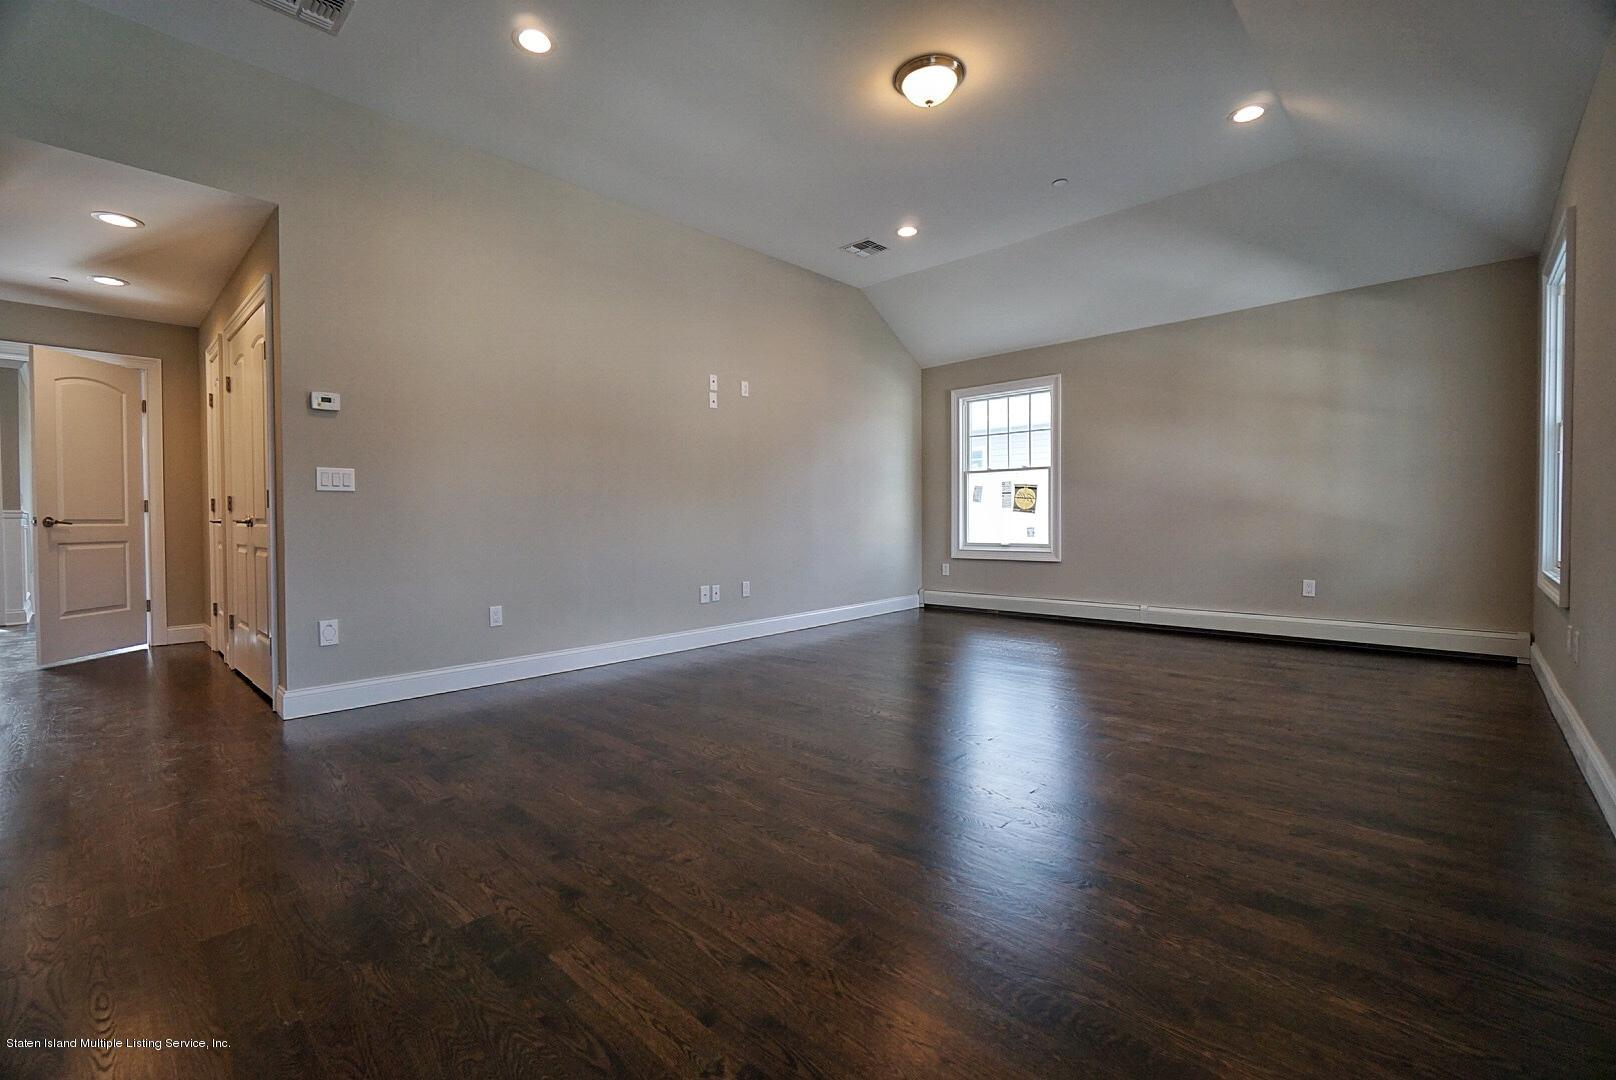 Two Family - Detached 169 Bathgate St   Staten Island, NY 10312, MLS-1122726-19